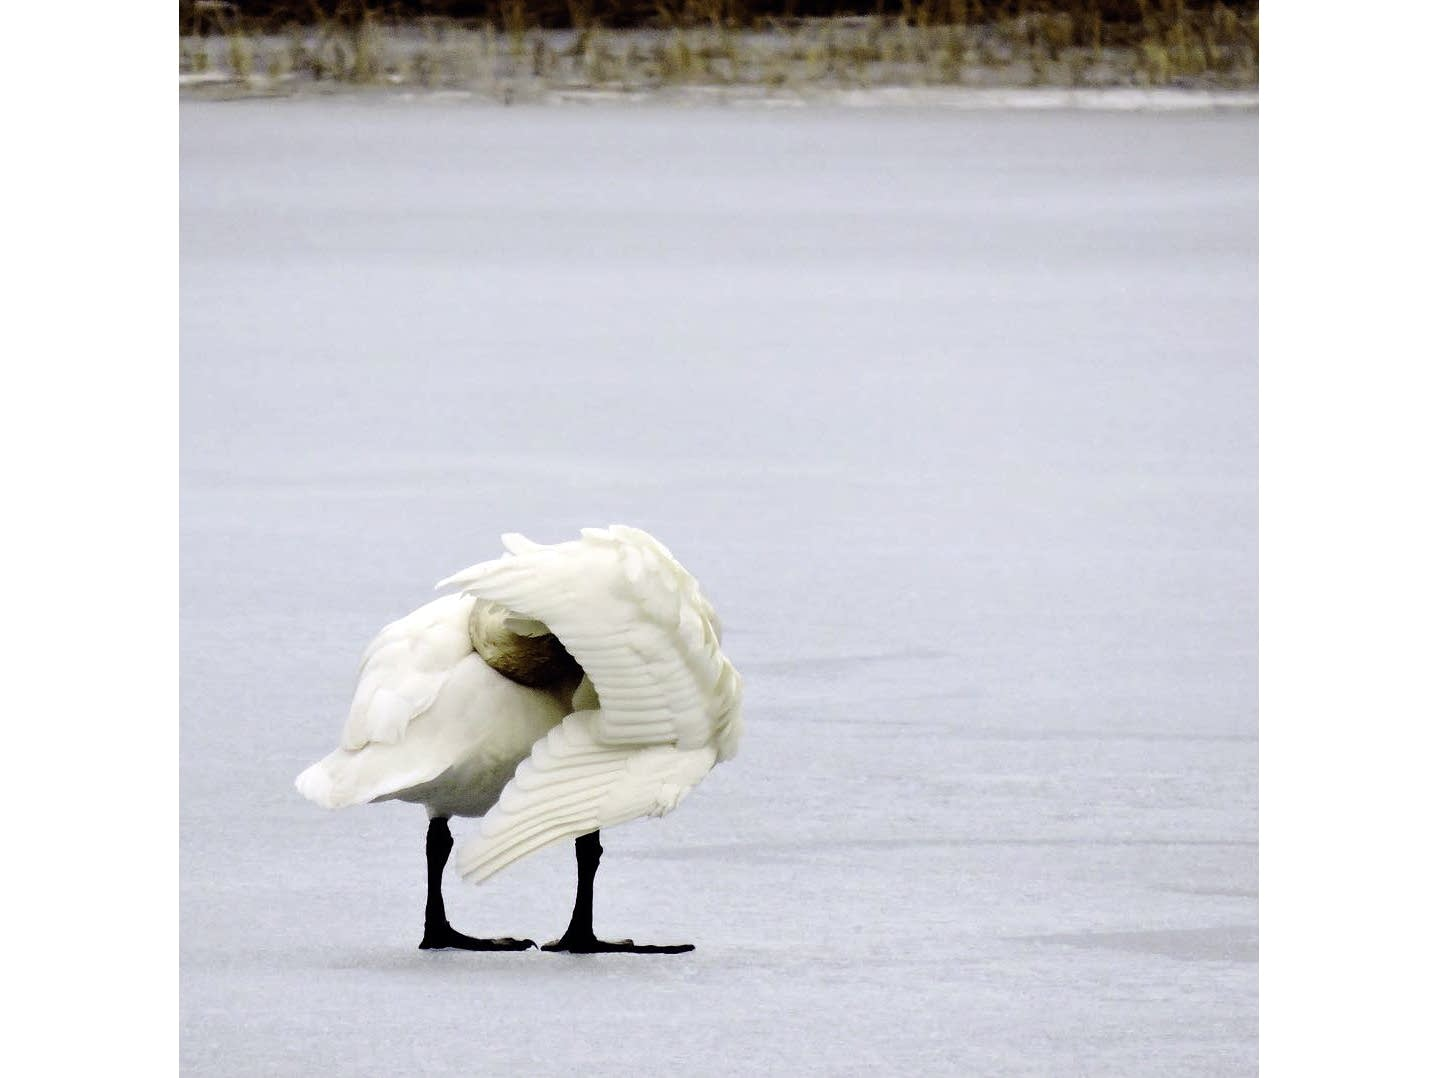 Big floppy feet out on the ice. Trumpeter swan.